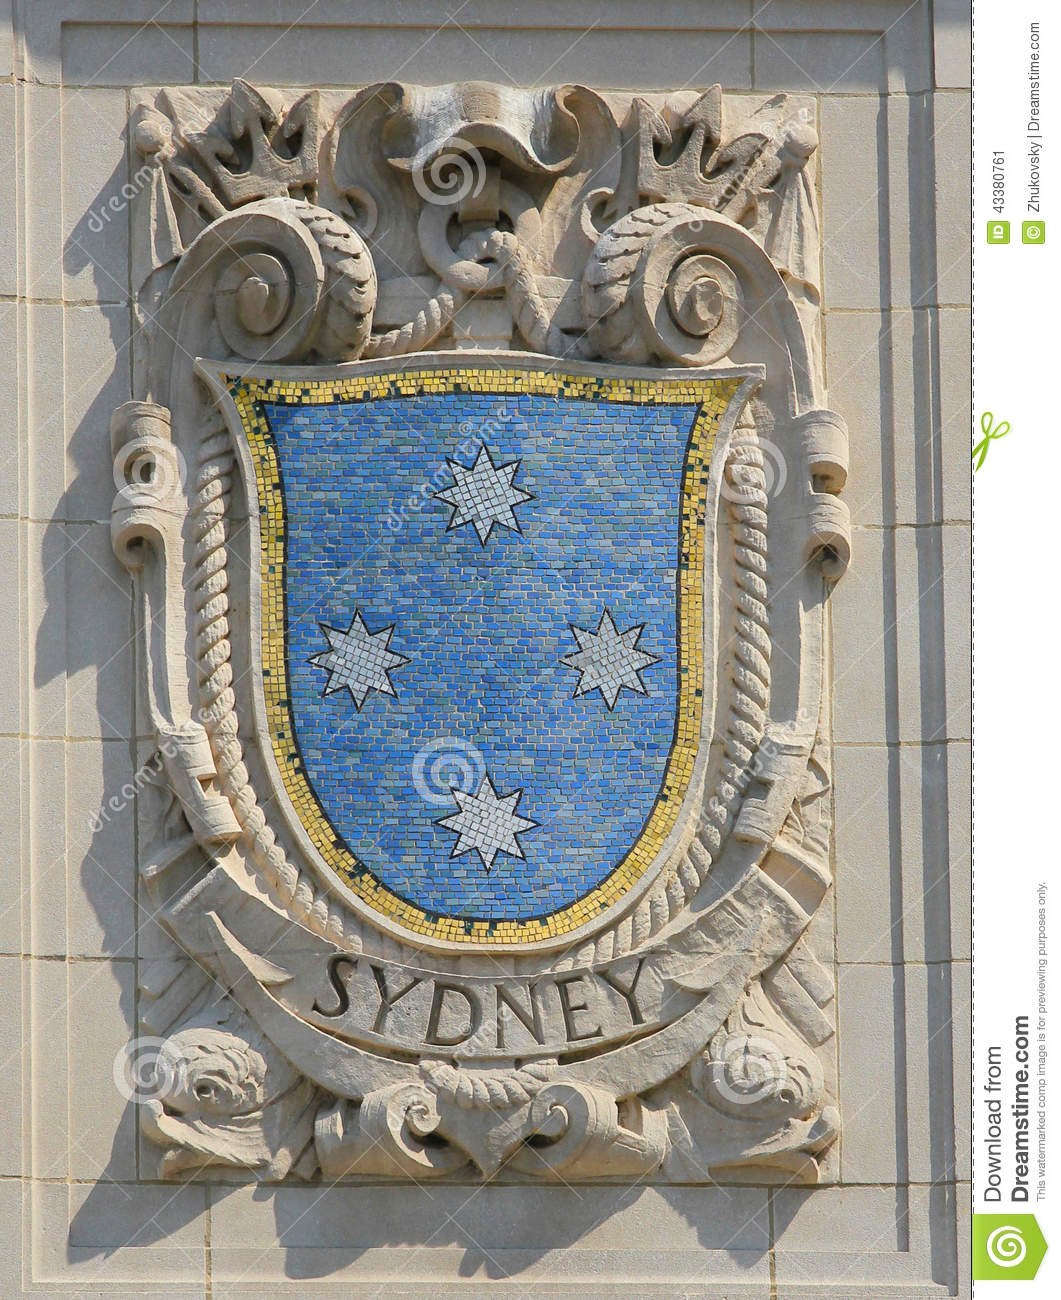 Sidney (NE) United States  city images : shield of renowned port city Sydney at the facade of United States ...